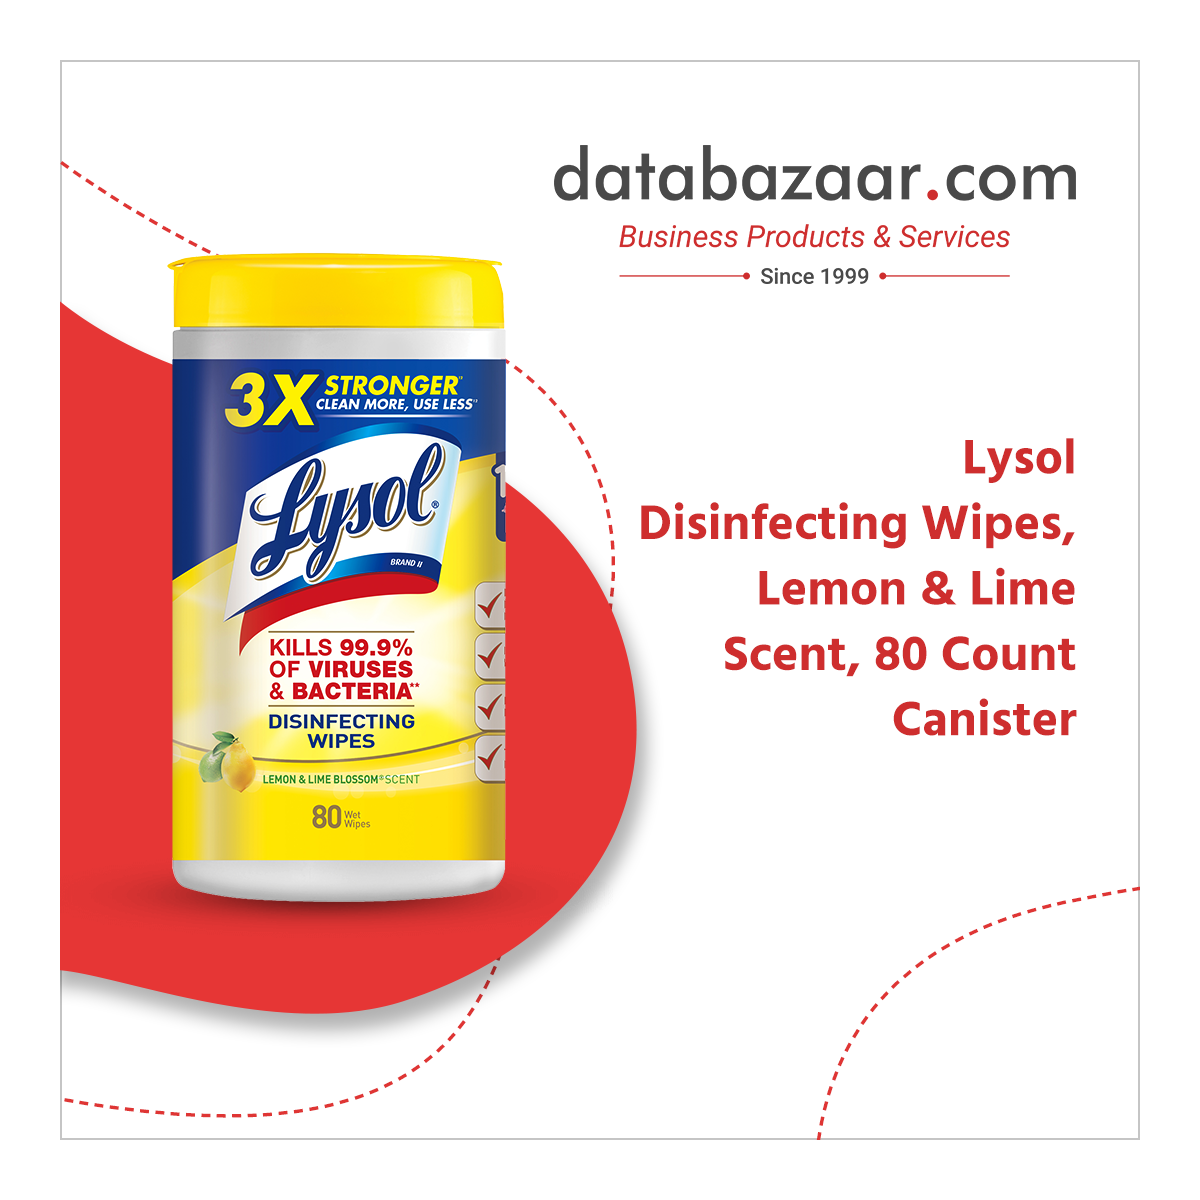 Lysol Disinfecting Wipes, Lemon & Lime Scent, 80 Count Canister